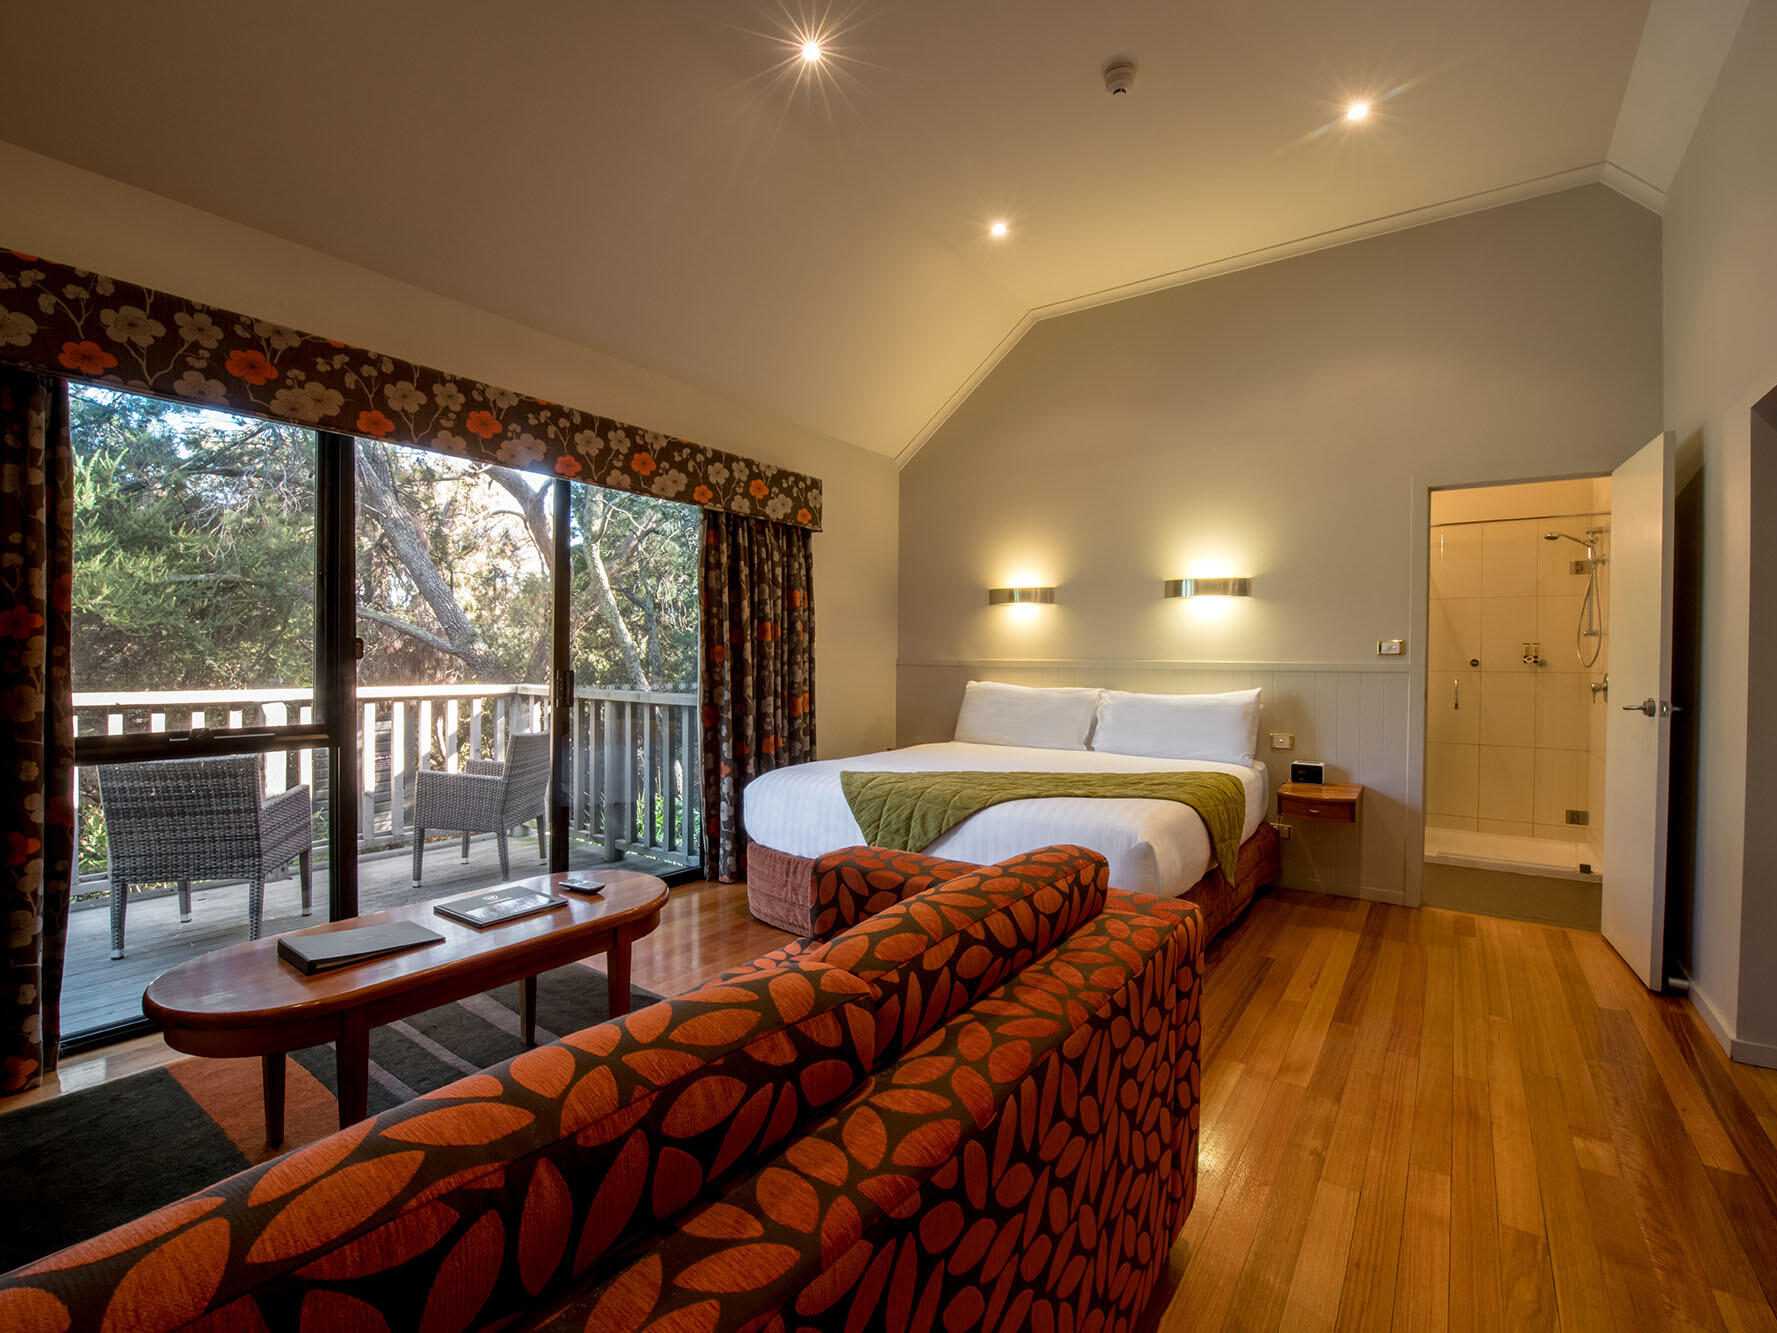 One Room Cabin bedroom with king bed & sofa at Freycinet Lodge